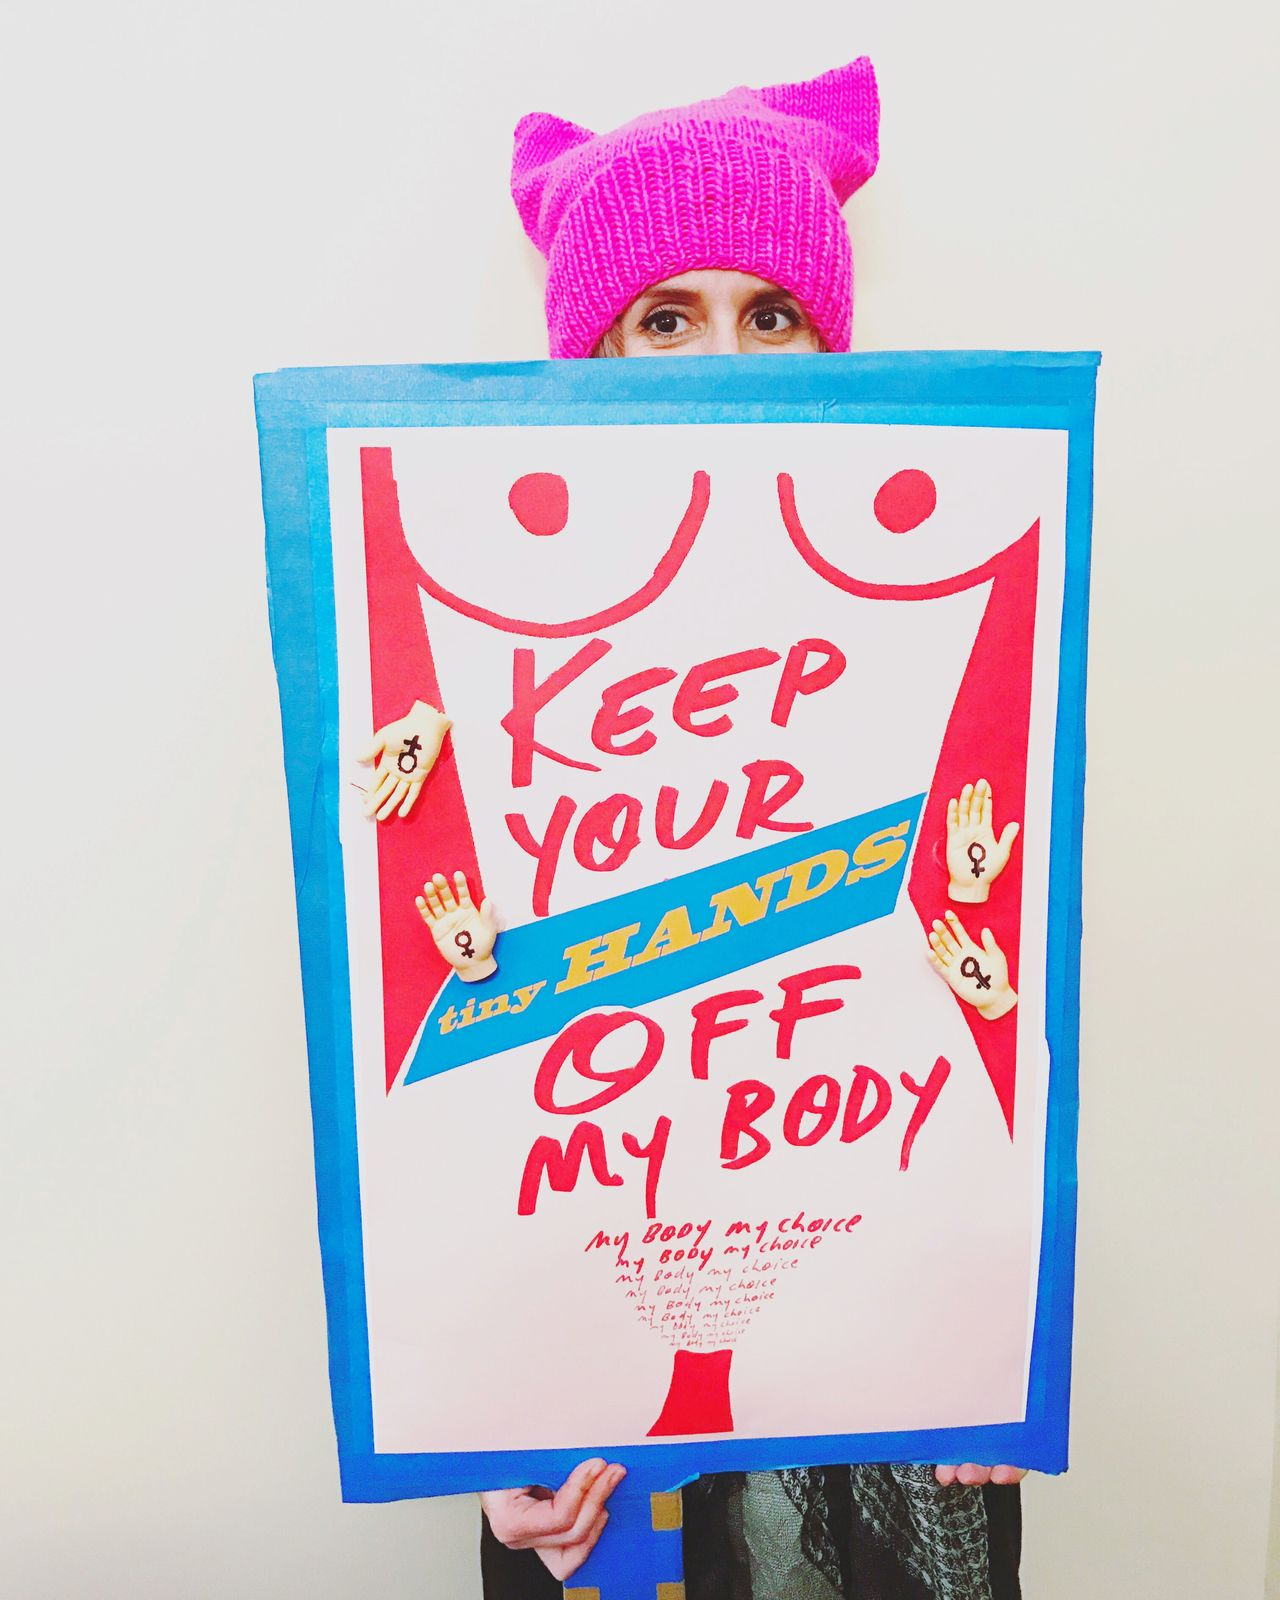 Donald Trump Resistance  Feminism Women's March On Washington Tiny Hands Feminist Protest Protest Posters Pussyhat My Body My Choice